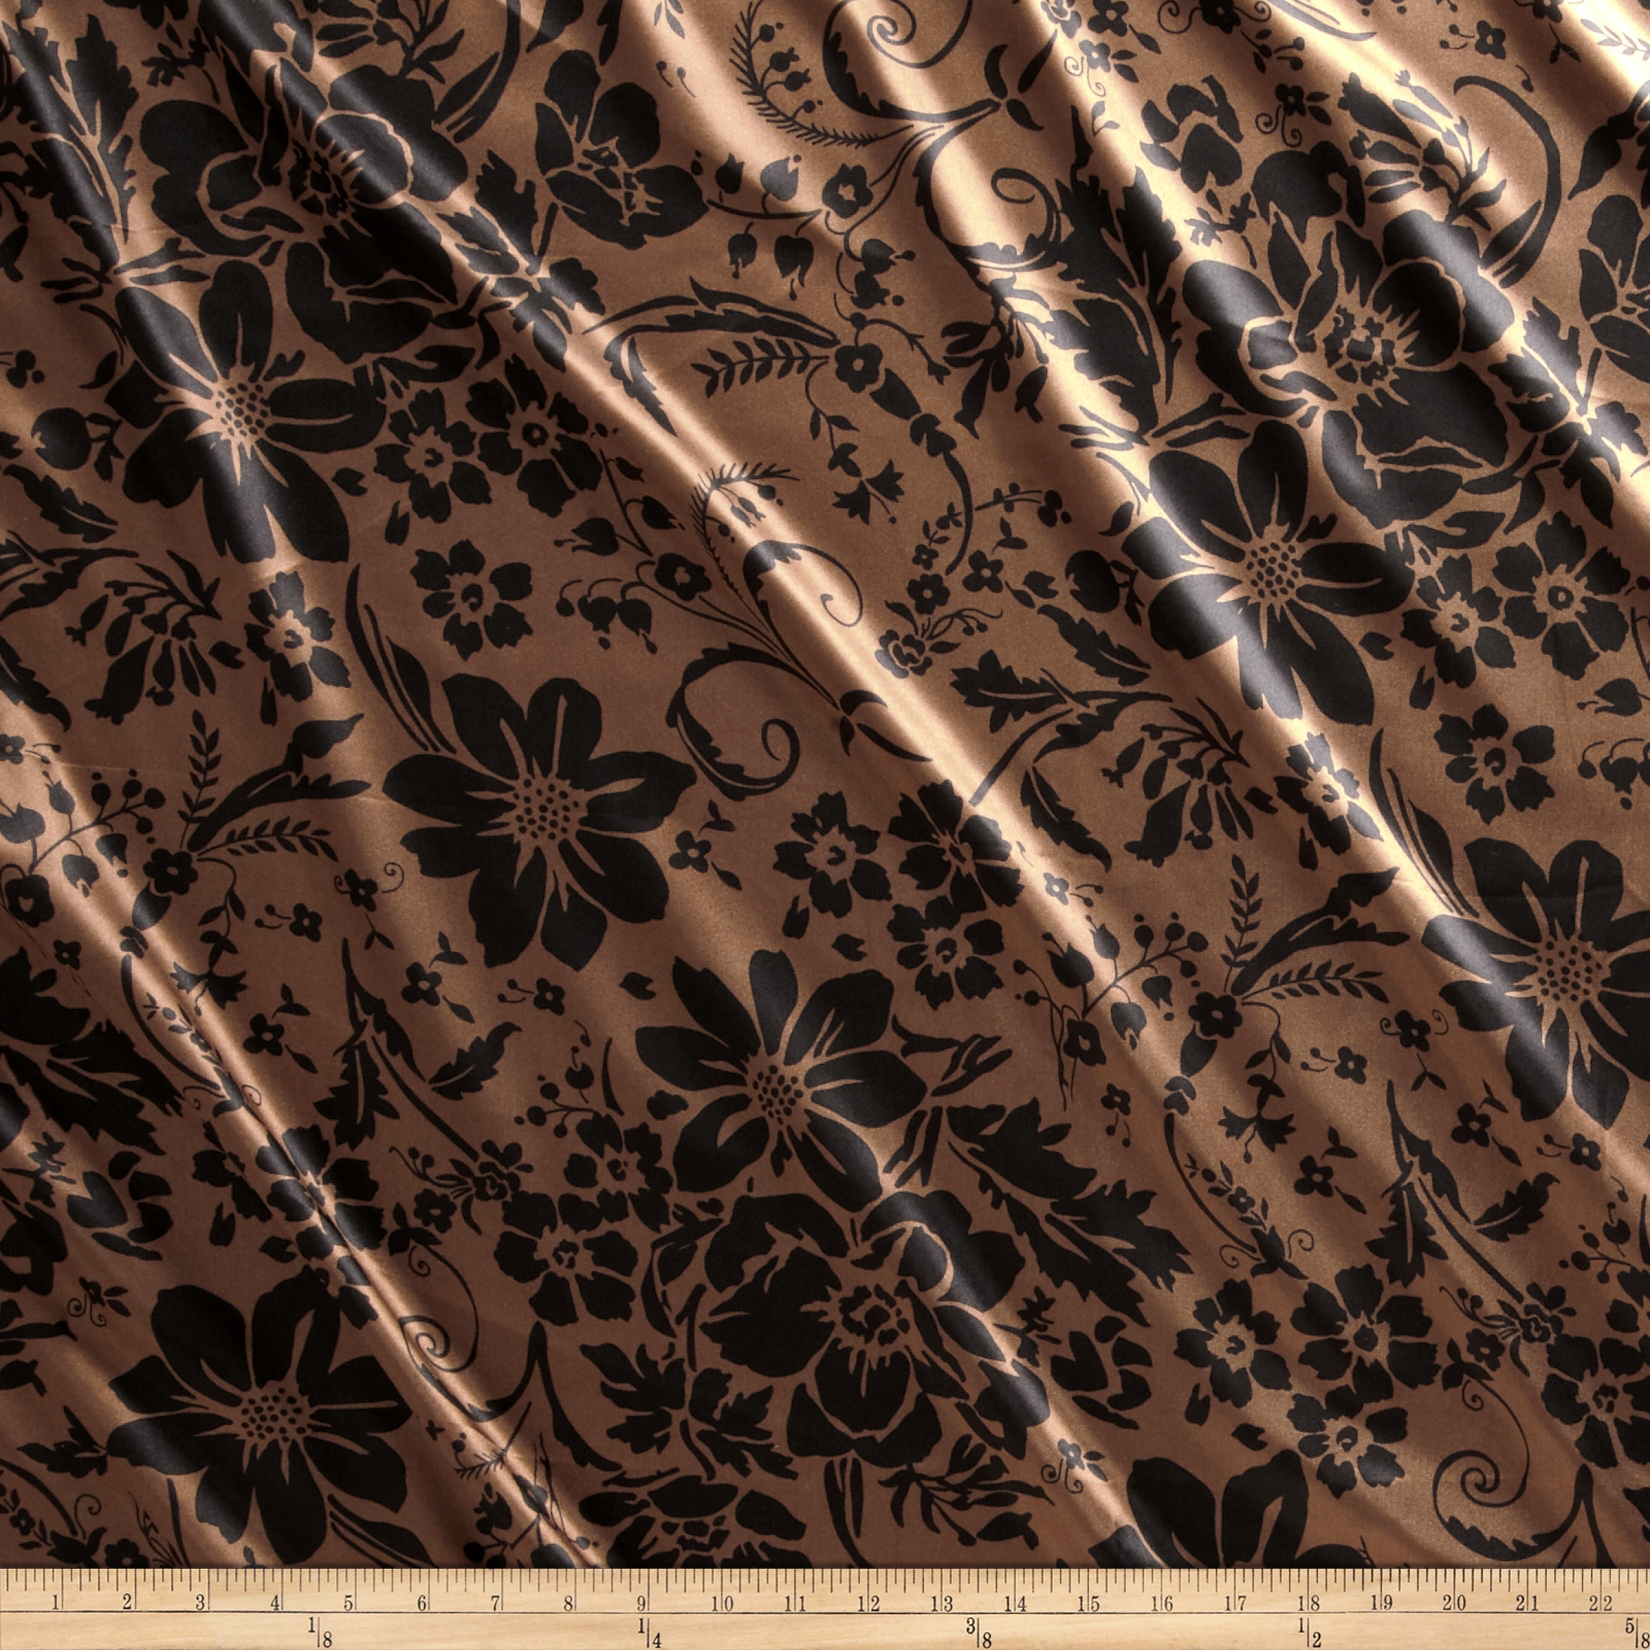 Charmeuse Satin Joy Flowers Brown/Black Fabric by Newcastle in USA